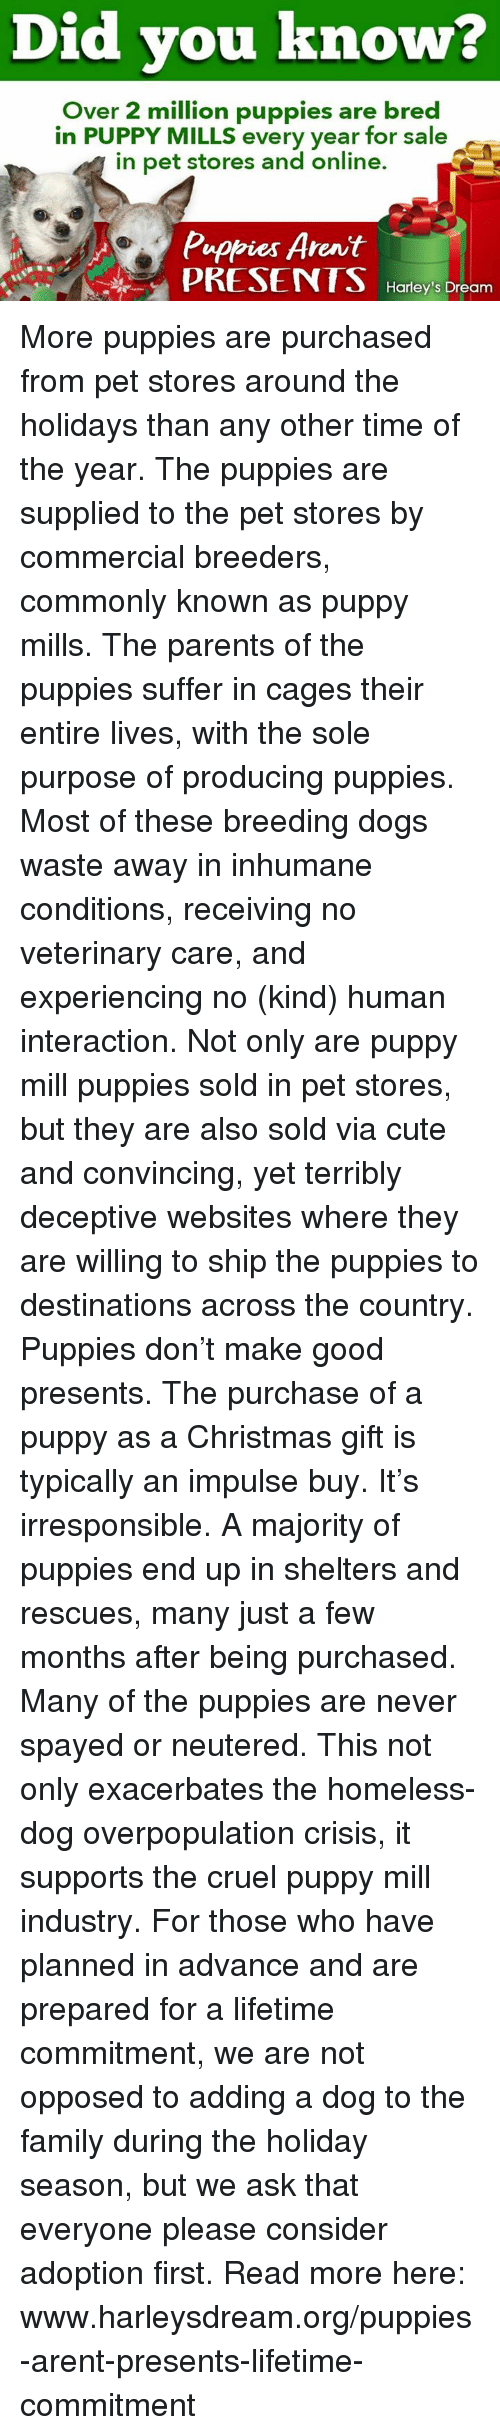 Christmas, Cute, and Dogs: Did you known  Over 2 million puppies are bred  in PUPPY MILLS every year for sale  in pet stores and online  Pappies Arnit  PRESENTS Haoy'sDroam More puppies are purchased from pet stores around the holidays than any other time of the year. The puppies are supplied to the pet stores by commercial breeders, commonly known as puppy mills. The parents of the puppies suffer in cages their entire lives, with the sole purpose of producing puppies. Most of these breeding dogs waste away in inhumane conditions, receiving no veterinary care, and experiencing no (kind) human interaction.  Not only are puppy mill puppies sold in pet stores, but they are also sold via cute and convincing, yet terribly deceptive websites where they are willing to ship the puppies to destinations across the country.  Puppies don't make good presents. The purchase of a puppy as a Christmas gift is typically an impulse buy. It's irresponsible. A majority of puppies end up in shelters and rescues, many just a few months after being purchased. Many of the puppies are never spayed or neutered. This not only exacerbates the homeless-dog overpopulation crisis, it supports the cruel puppy mill industry.  For those who have planned in advance and are prepared for a lifetime commitment, we are not opposed to adding a dog to the family during the holiday season, but we ask that everyone please consider adoption first.  Read more here: www.harleysdream.org/puppies-arent-presents-lifetime-commitment